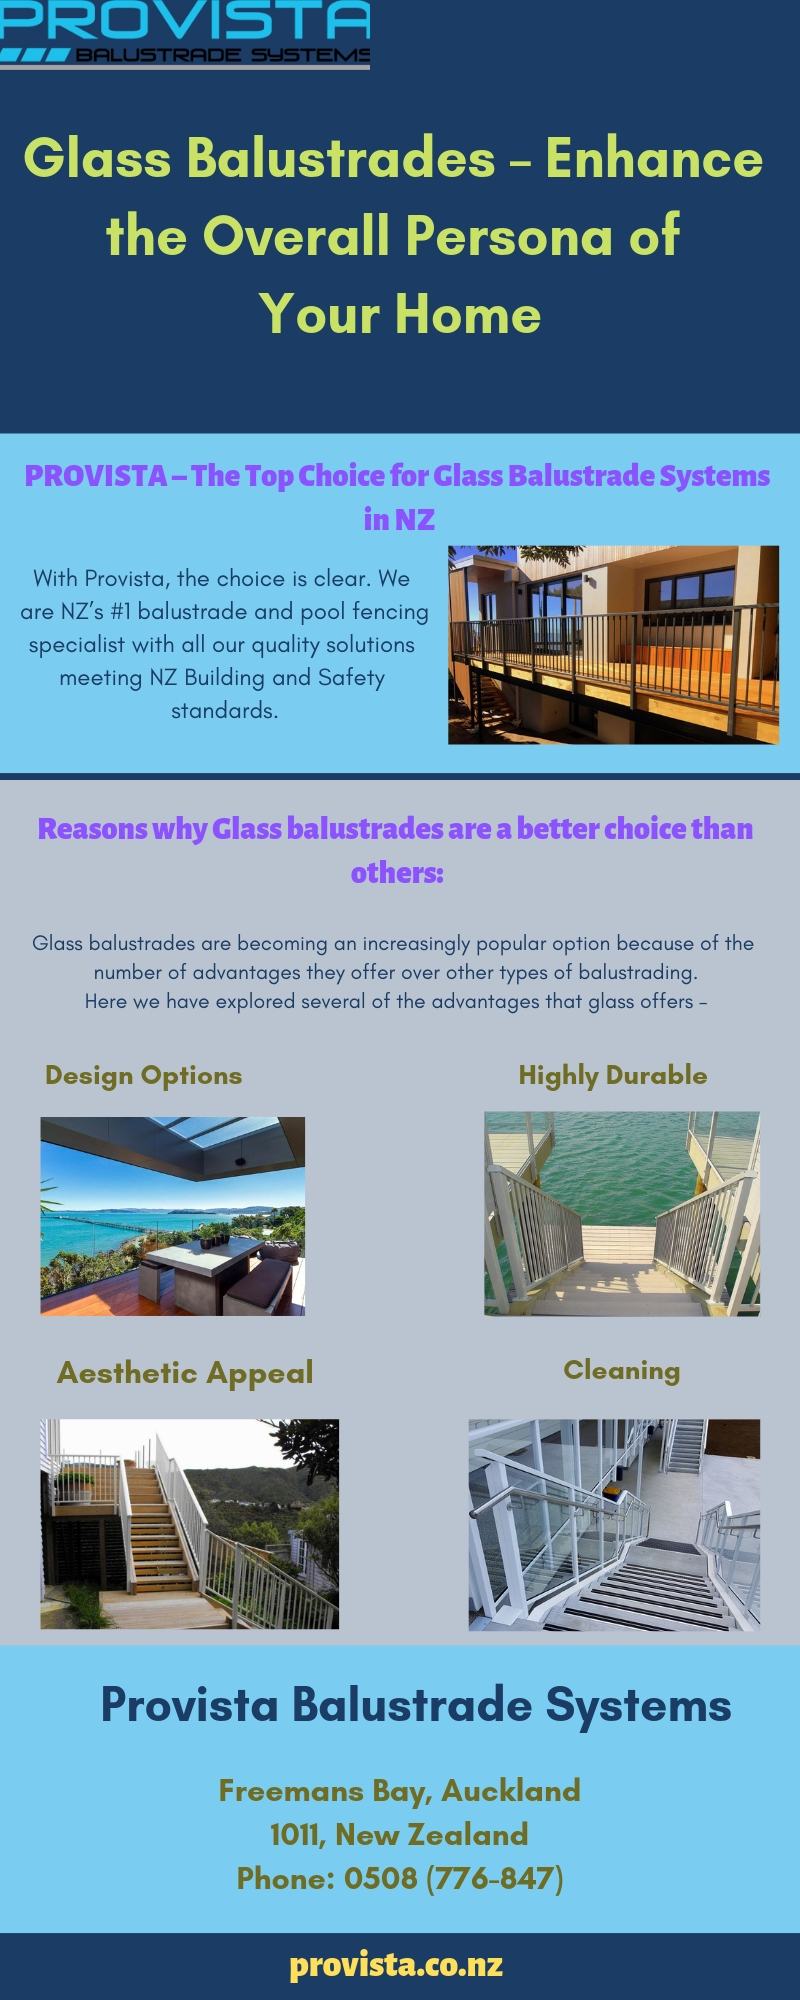 Glass Balustrades – Enhance the Overall Persona of Your Home  Are you looking for a material that can be used for enclosing terraces and provide a graceful look to your living space? Why not stylize your home with classic Glass Balustrades. For more details, visit this link: https://bit.ly/2Vk4nXD  by Provista